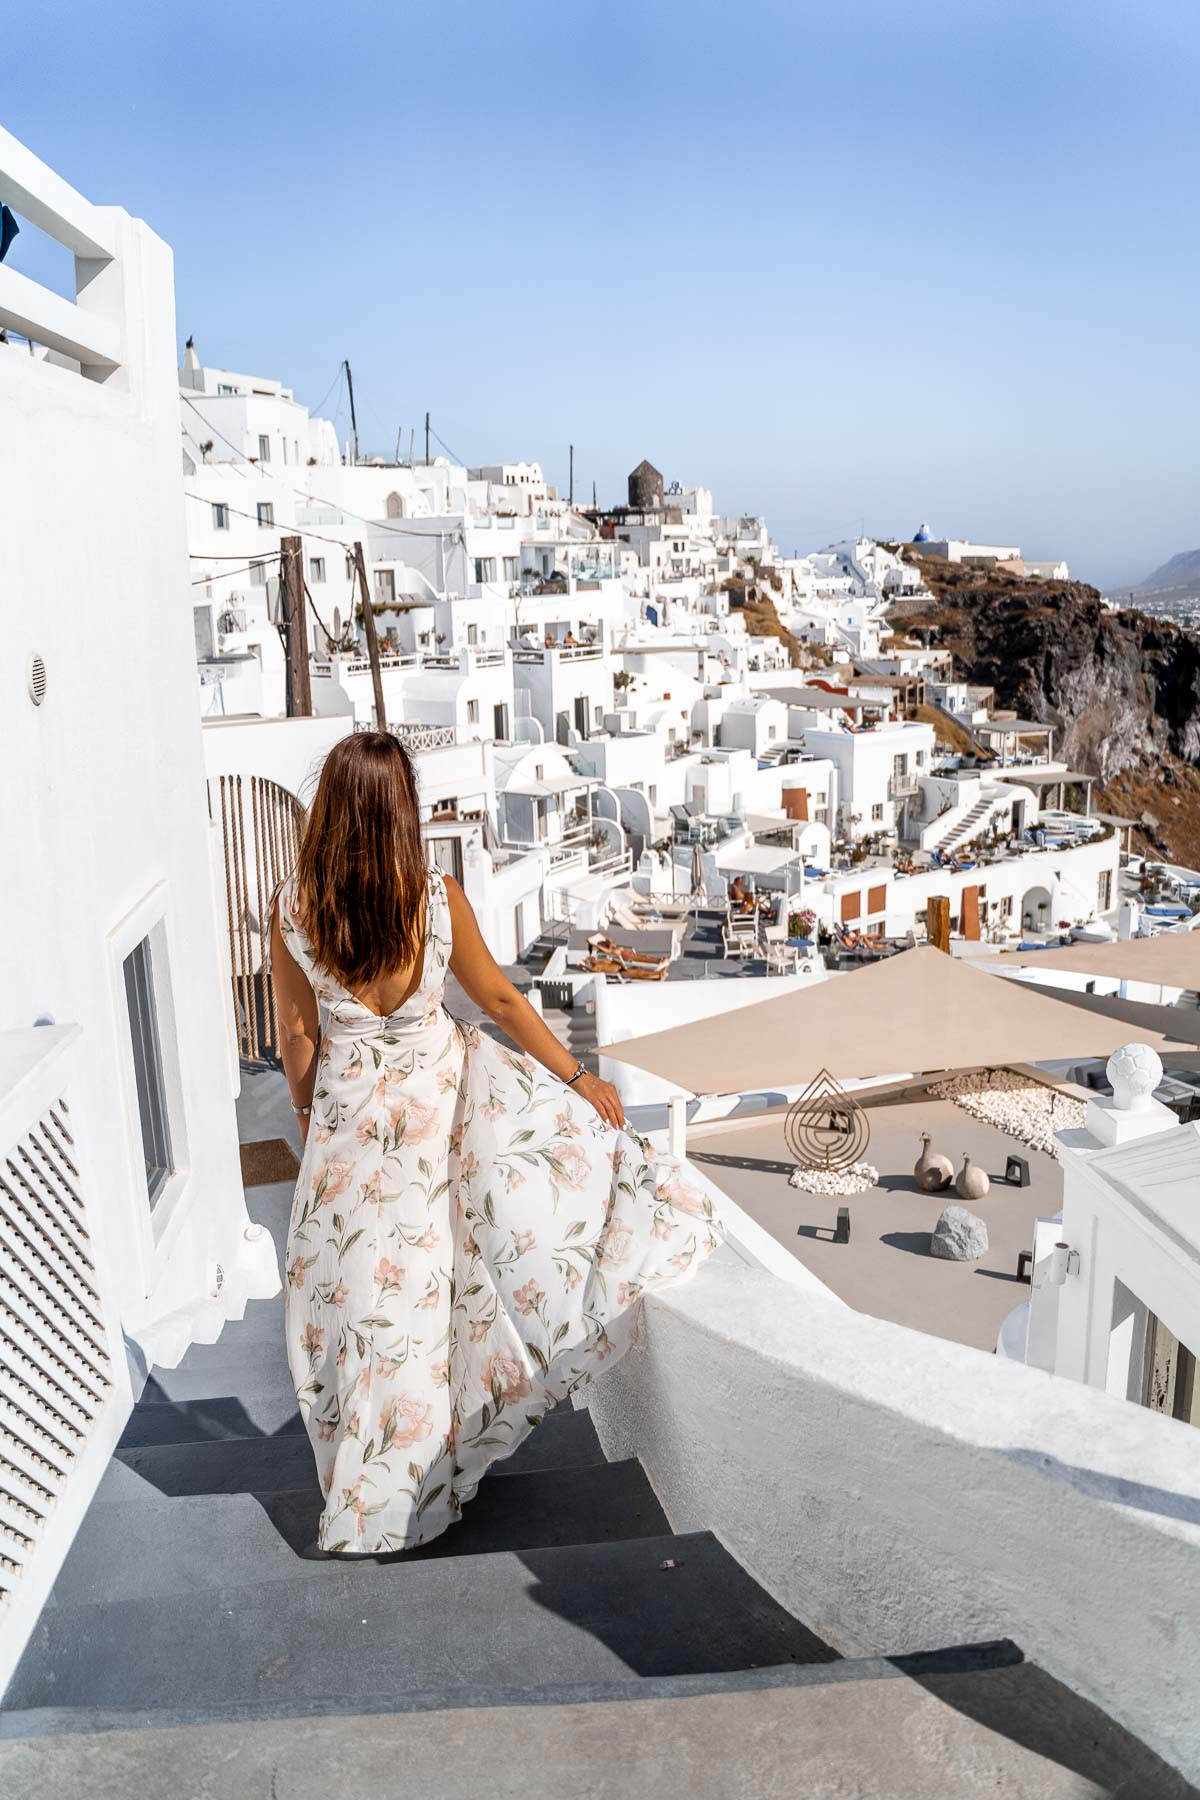 Girl in a floral dress standing in the streets of Imerovigli, Santorini